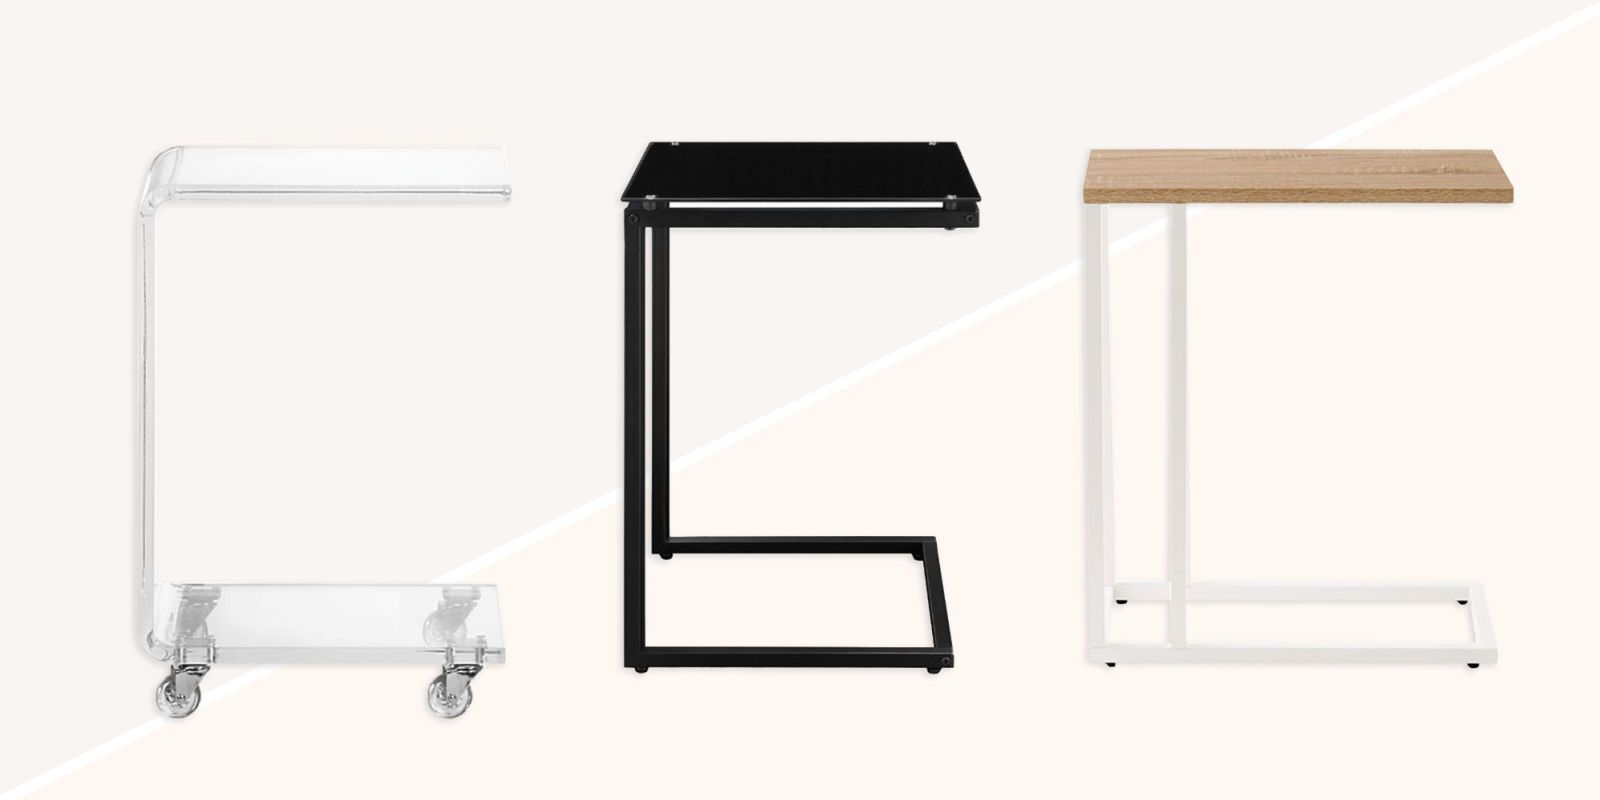 C Shaped End Tables